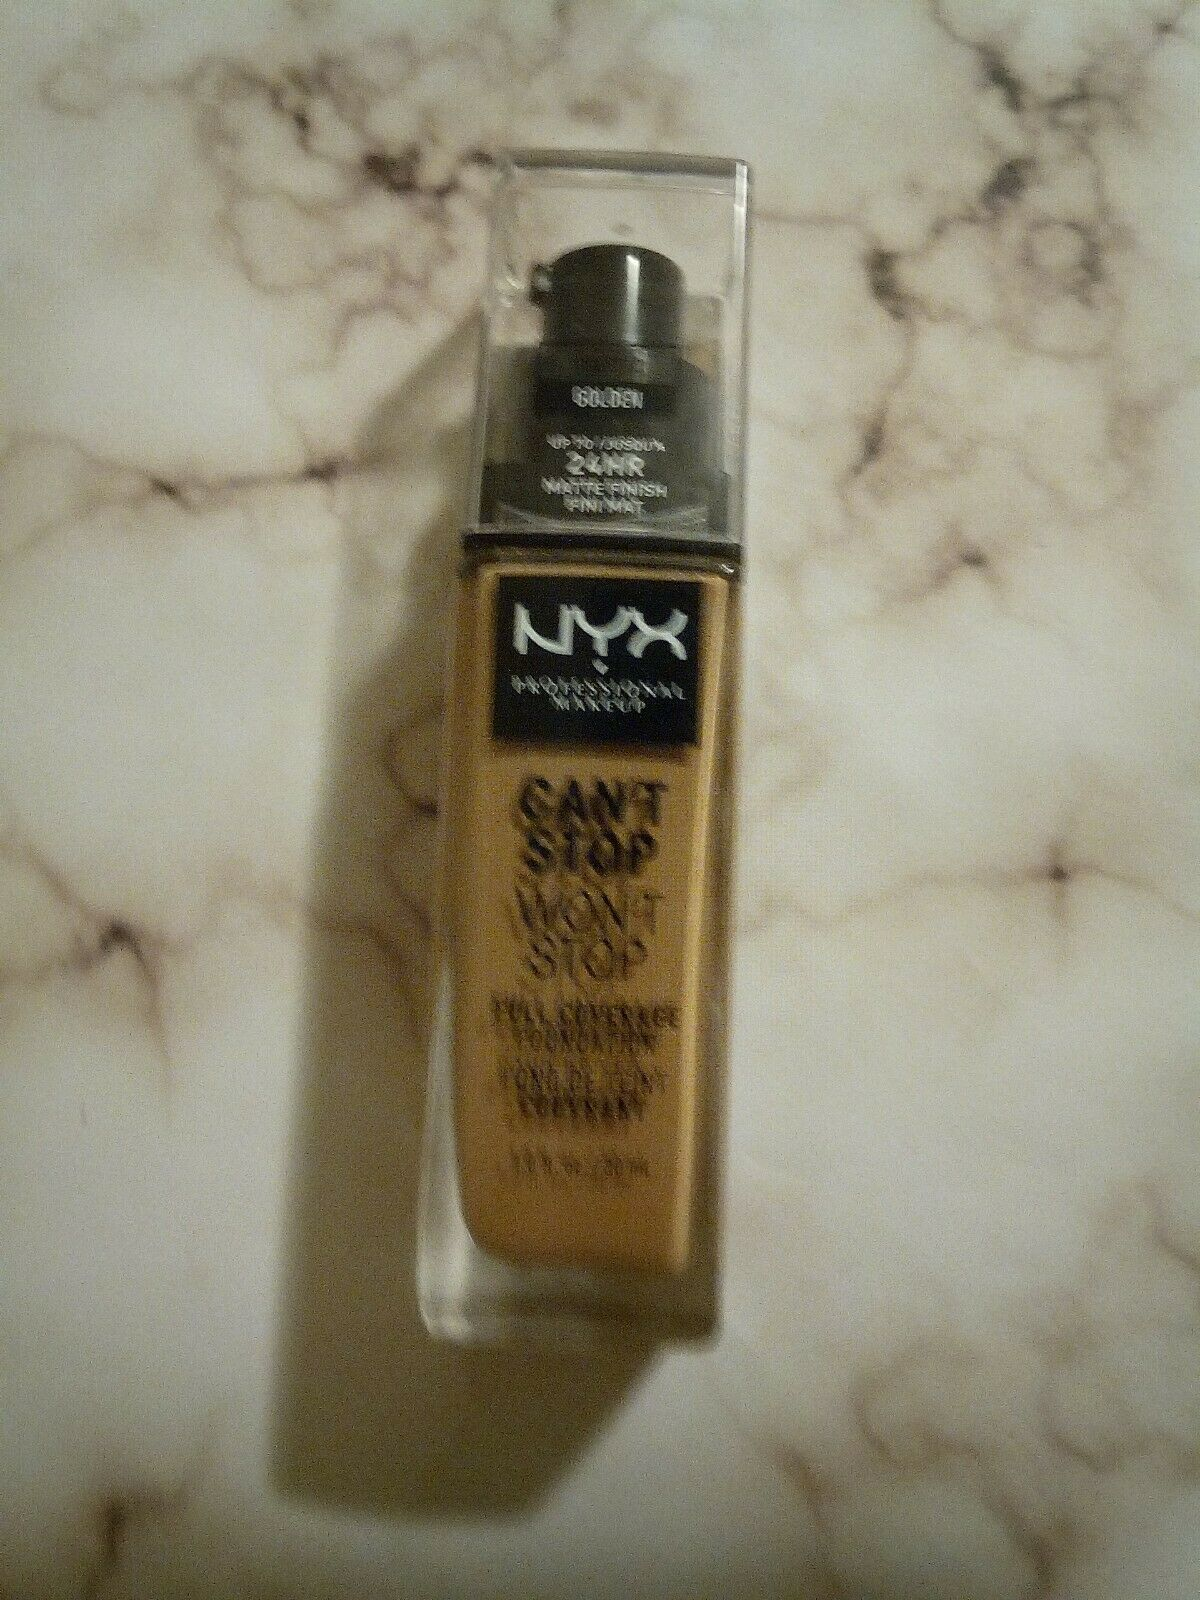 Primary image for NYX CAN'T STOP WON'T STOP24HR MATTE FINISH FULL COVERAGE FOUNDATION GOLDEN!